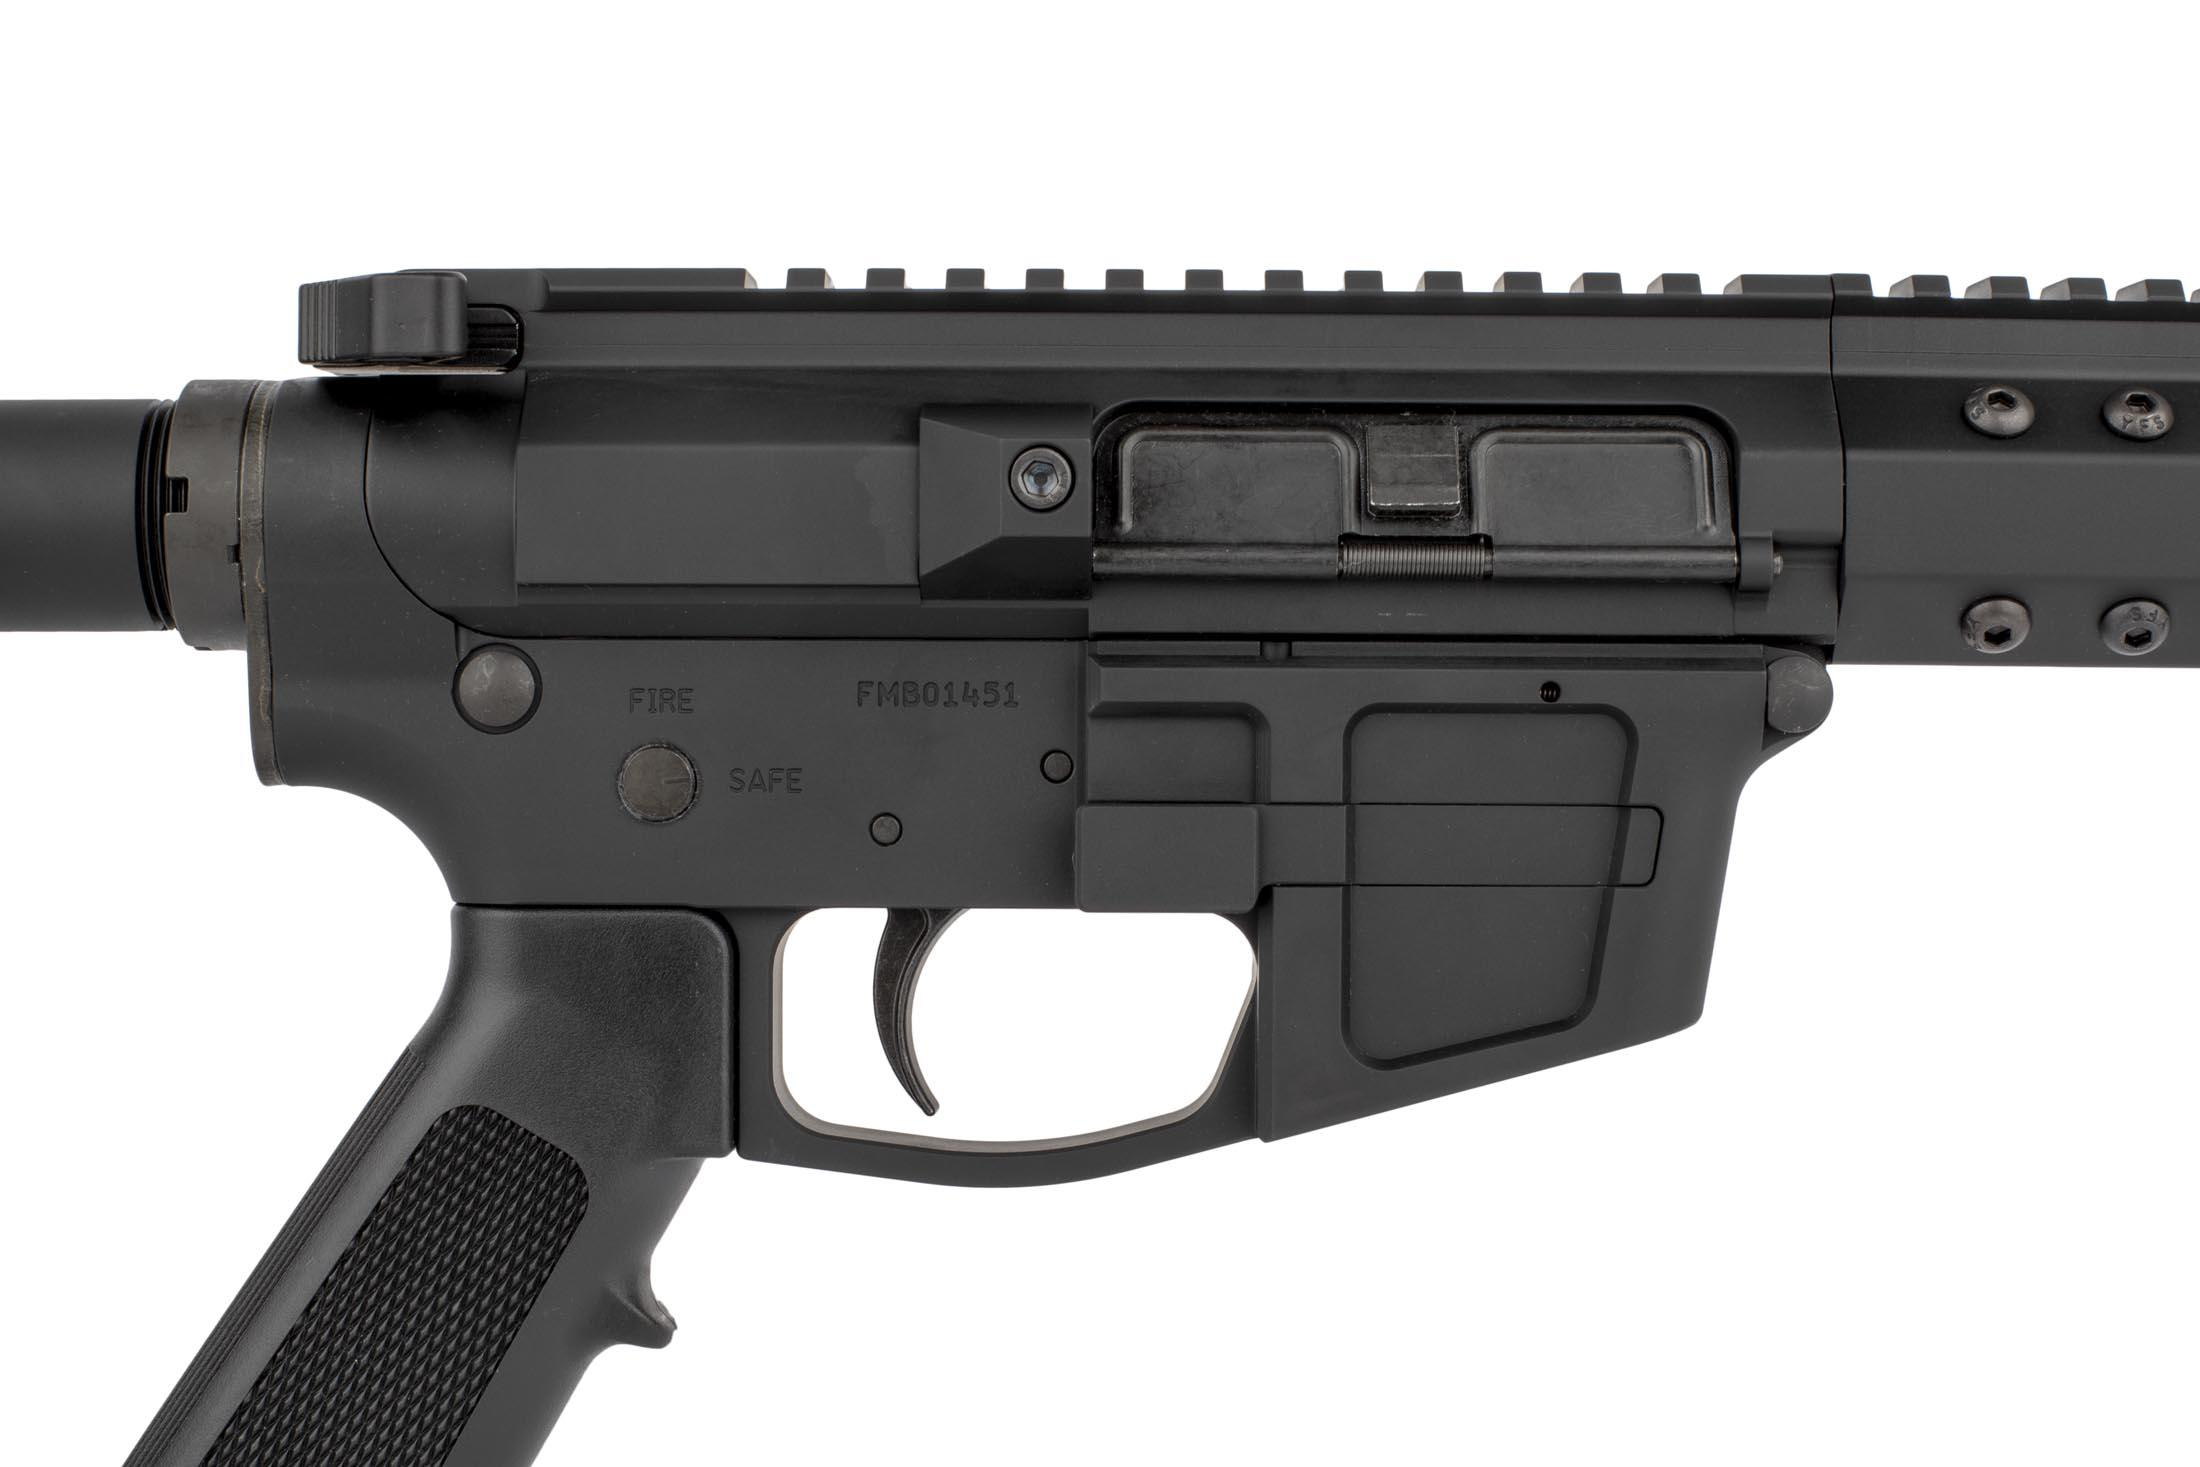 The Foxtrot Mike products AR-9 pistol features a billet machined upper and lower receiver